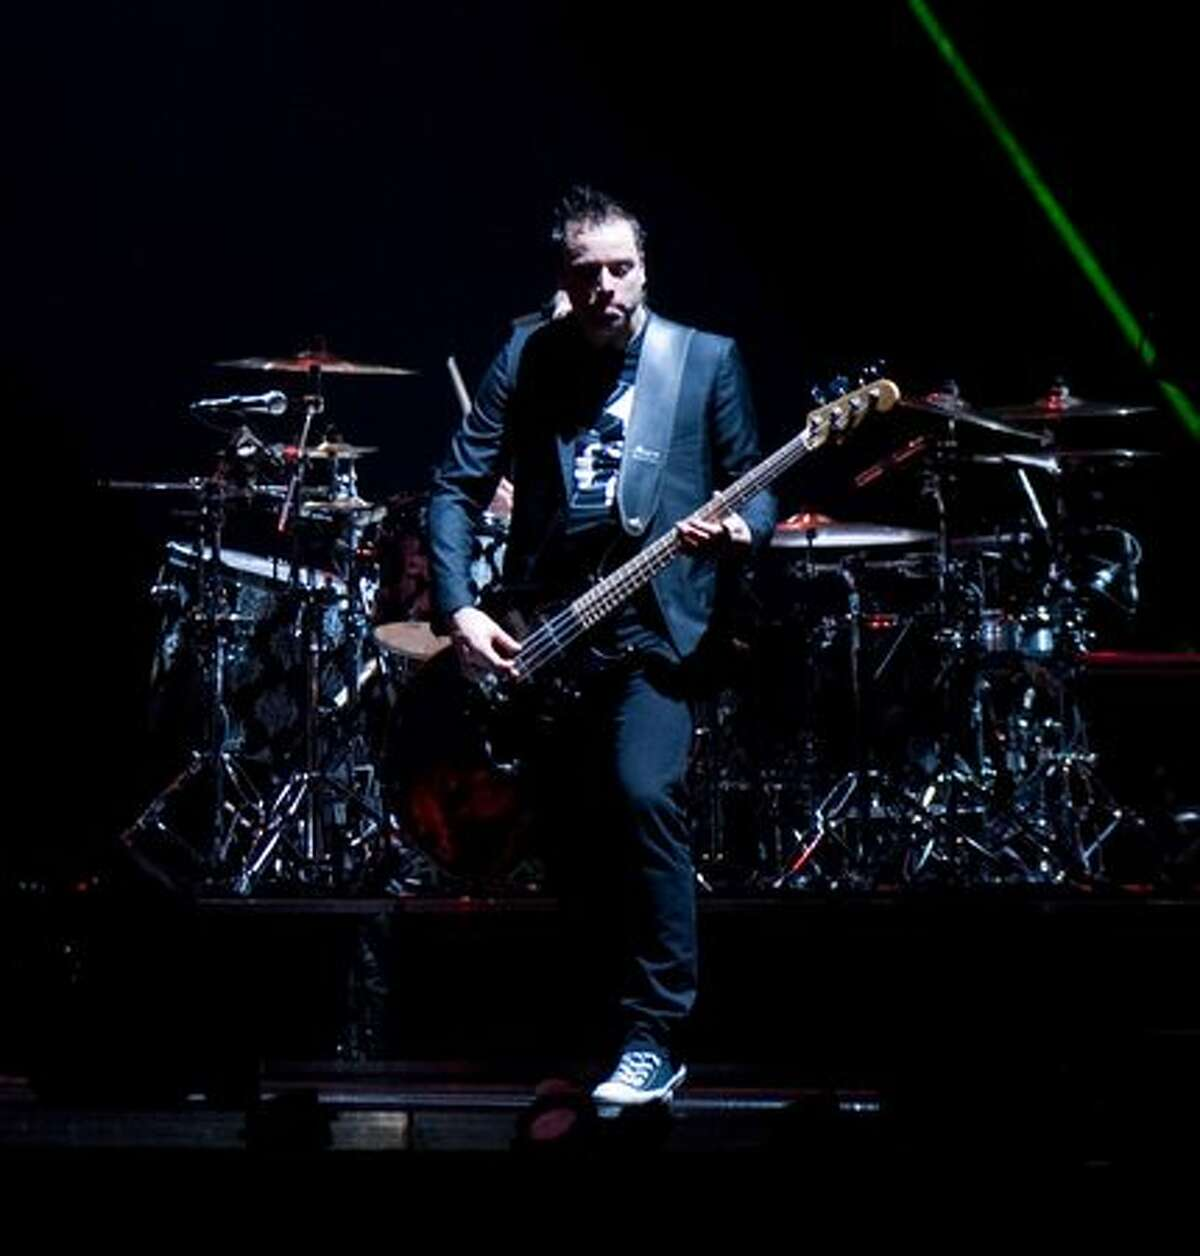 Muse performing a sold-out show at Key Arena on April 2, 2010.